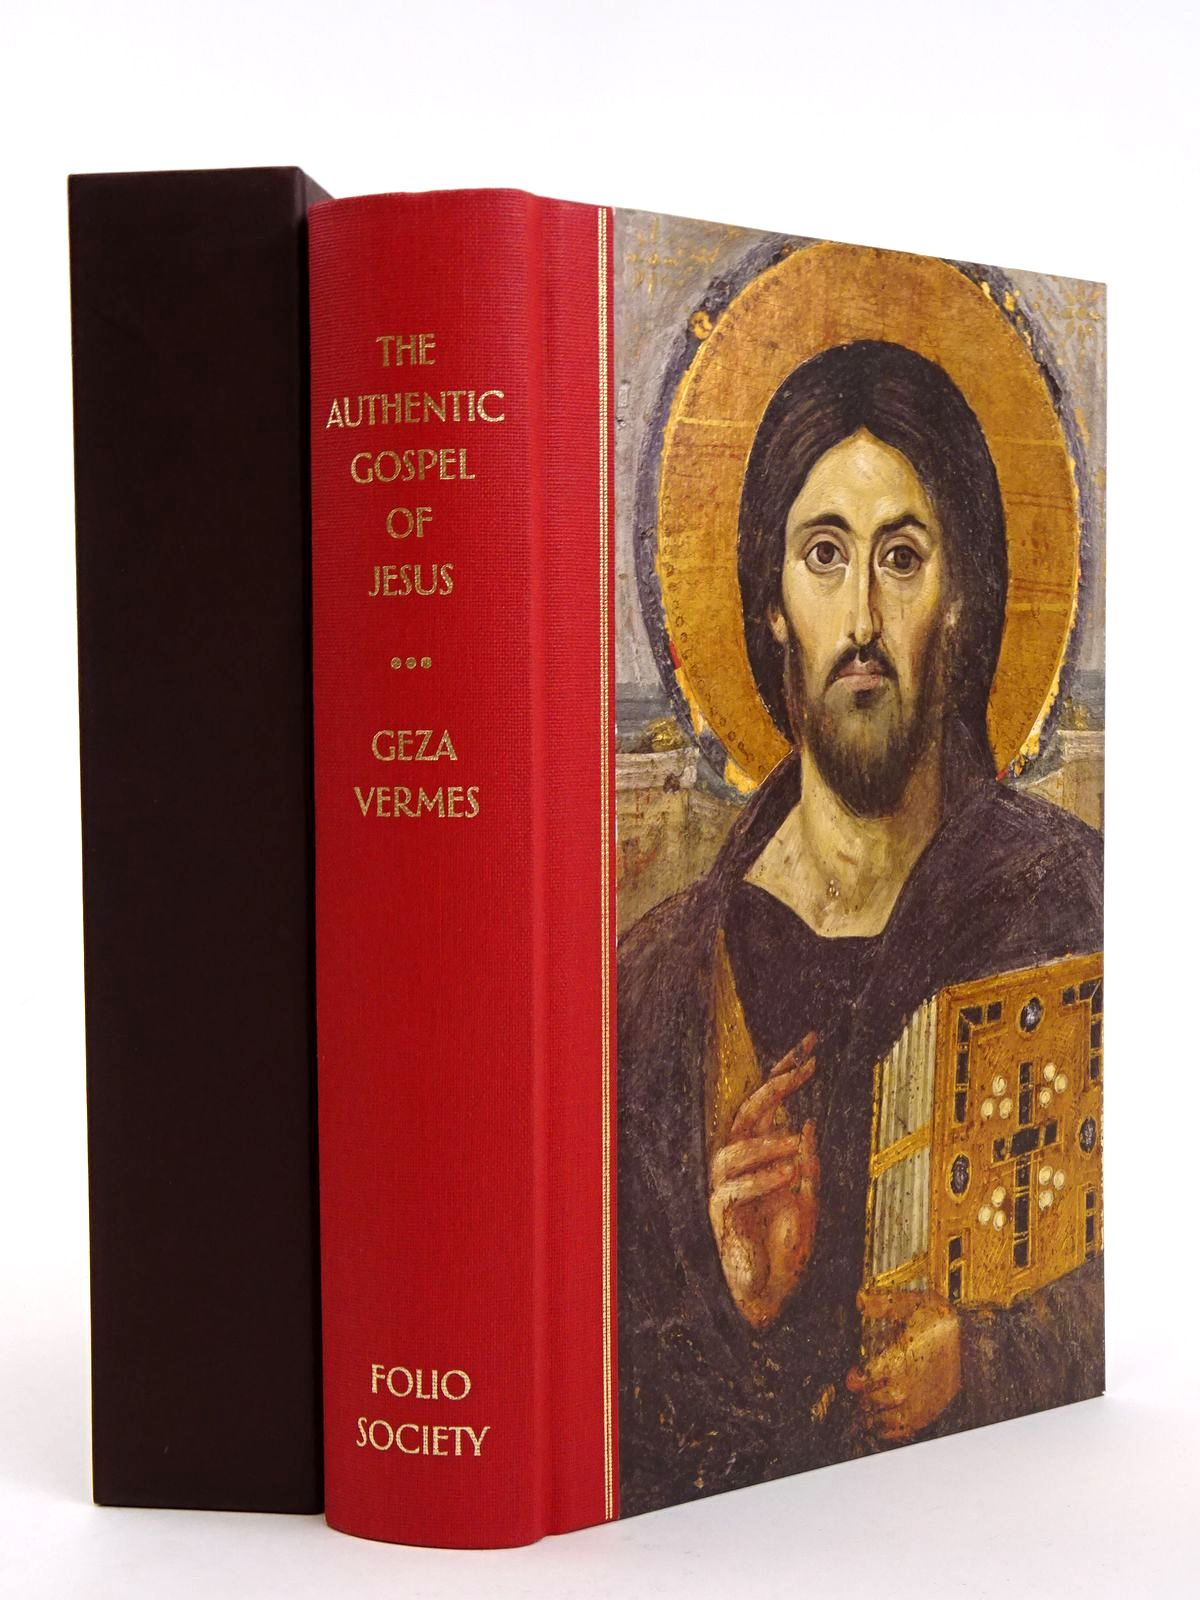 Photo of THE  AUTHENTIC GOSPEL OF JESUS written by Vermes, Geza published by Folio Society (STOCK CODE: 1818205)  for sale by Stella & Rose's Books